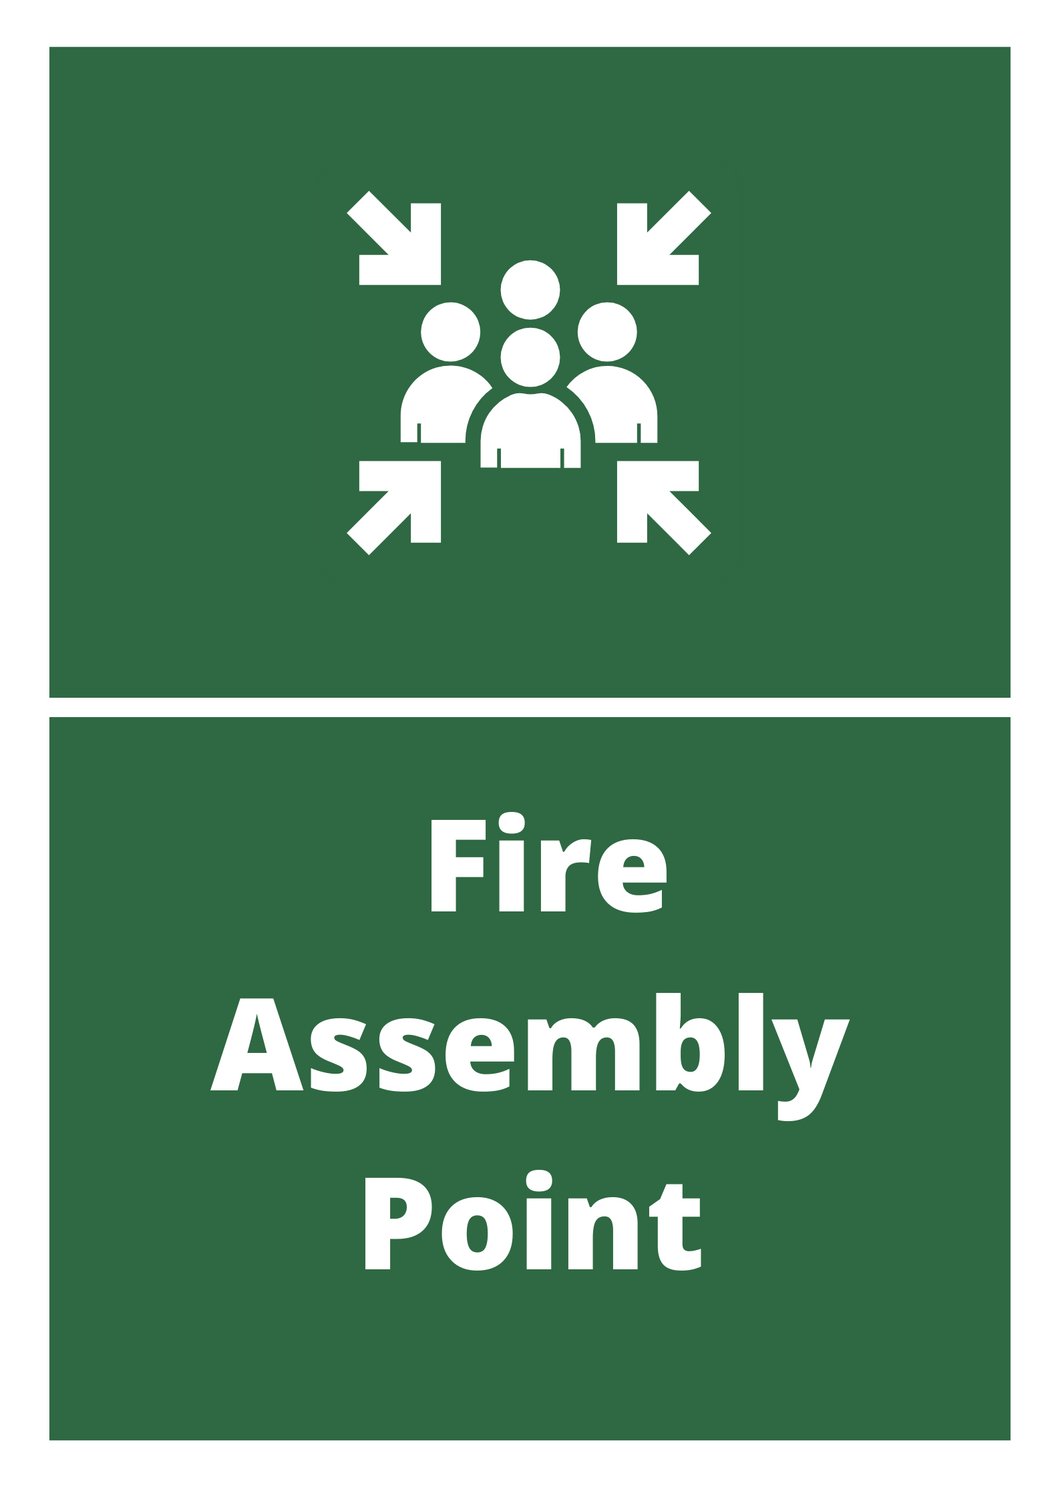 Fire Assembly Poster Free Download